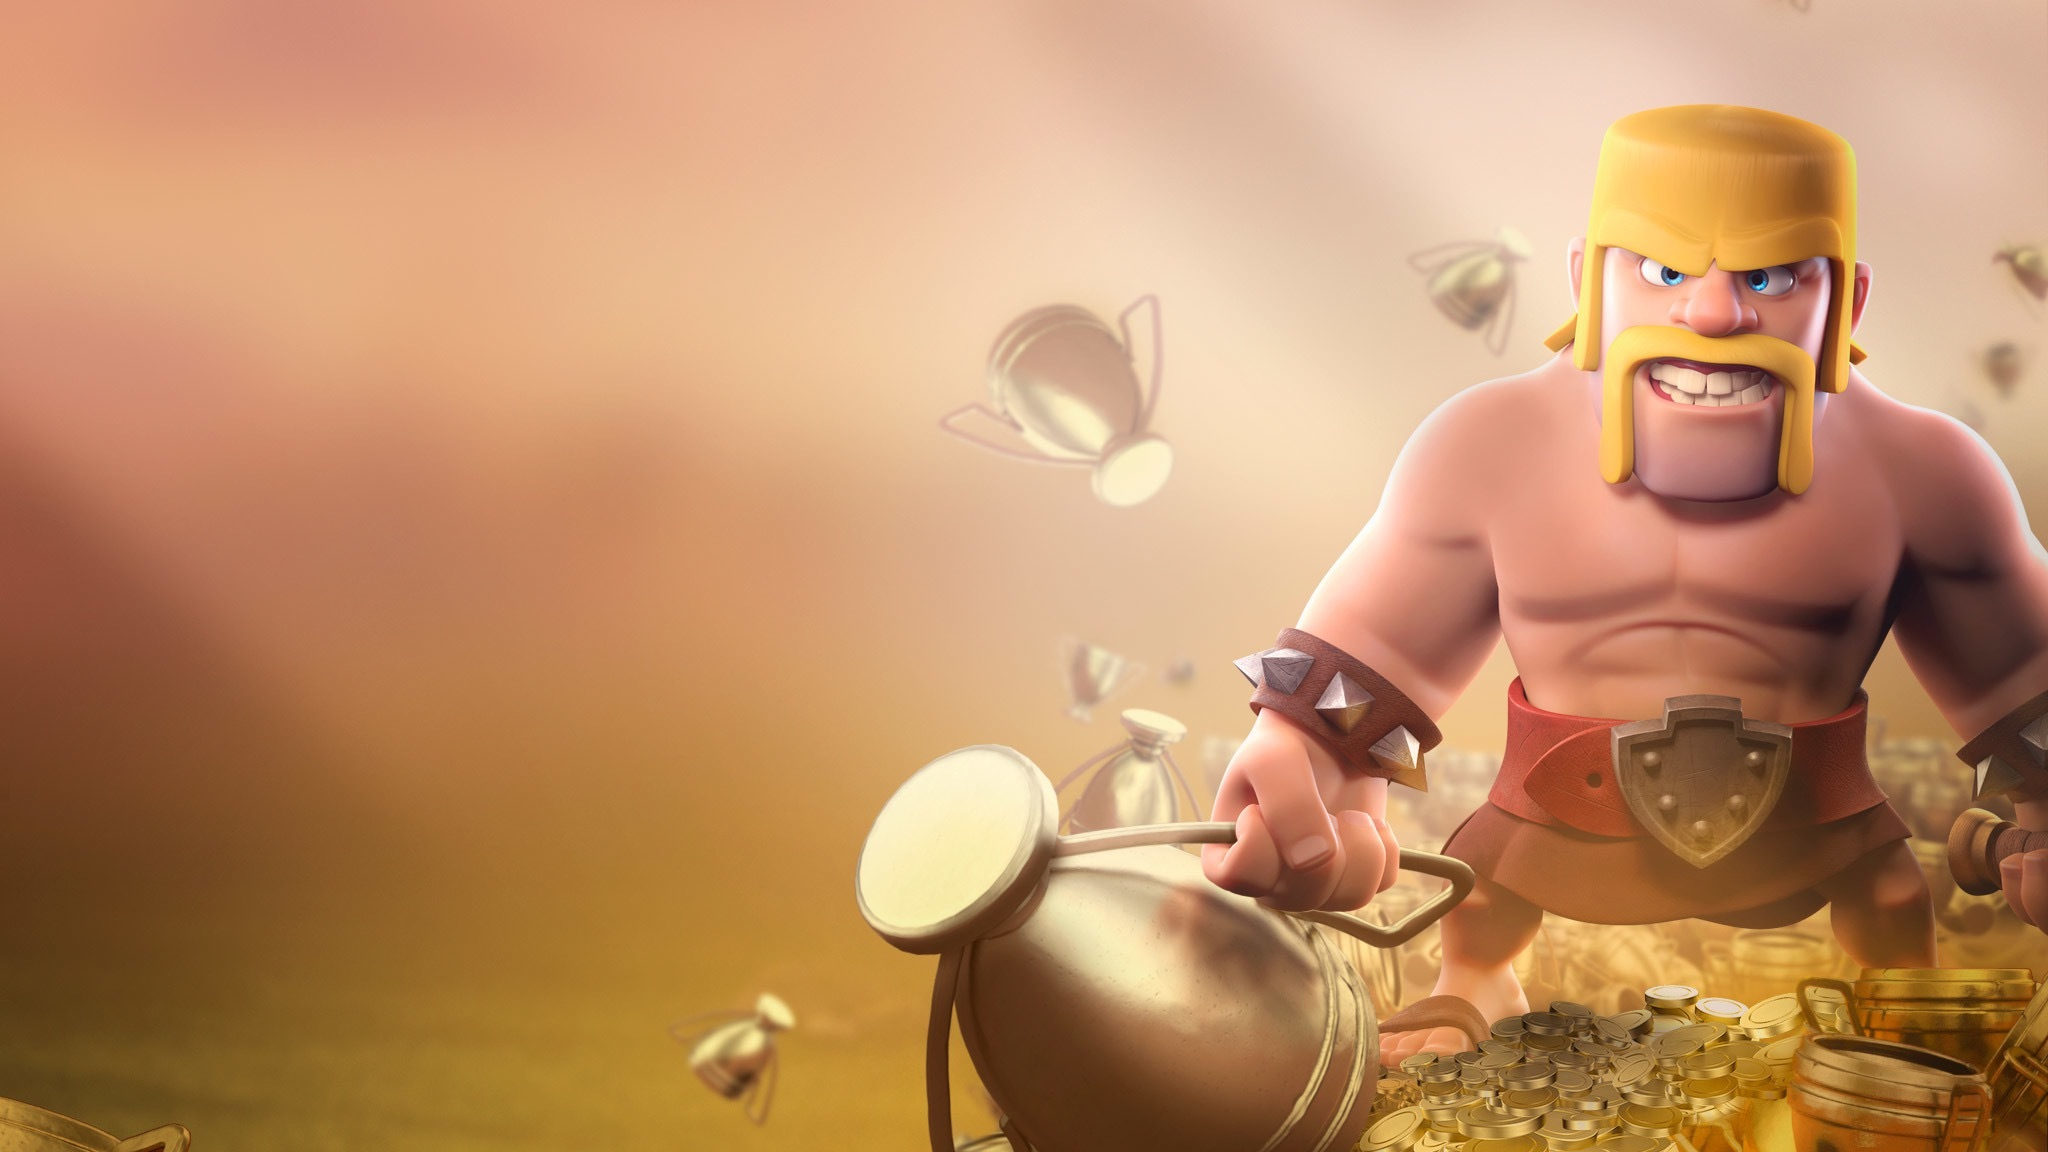 Barbarian Clash Of Clans Hd Hd Games 4k Wallpapers: 2048x1152 Barbarian Clash Of Clans HD 2048x1152 Resolution